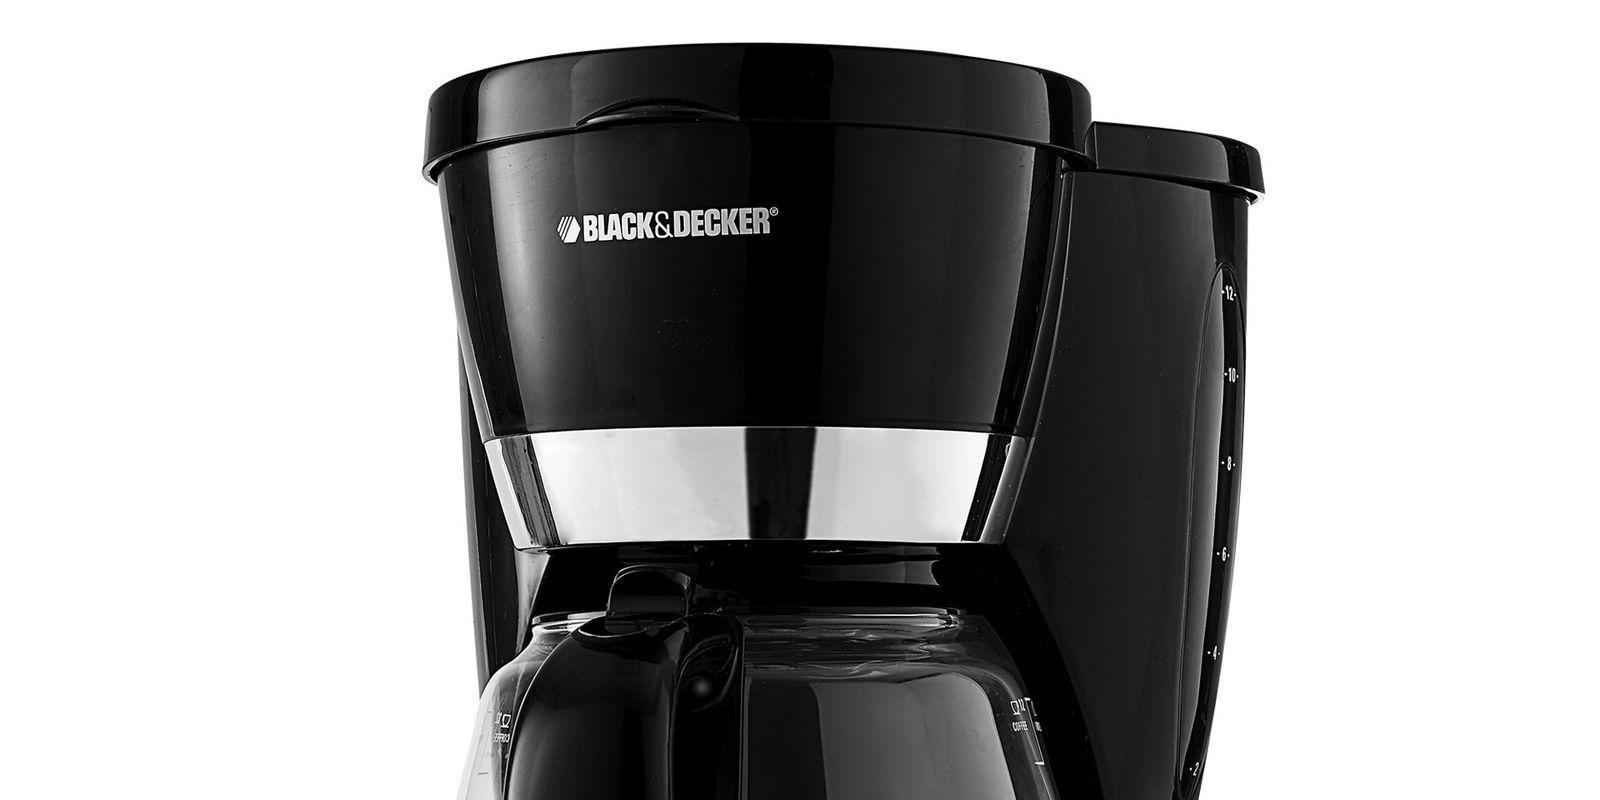 Black & Decker 12-Cup Programmable Coffee Maker #CM1050B Review